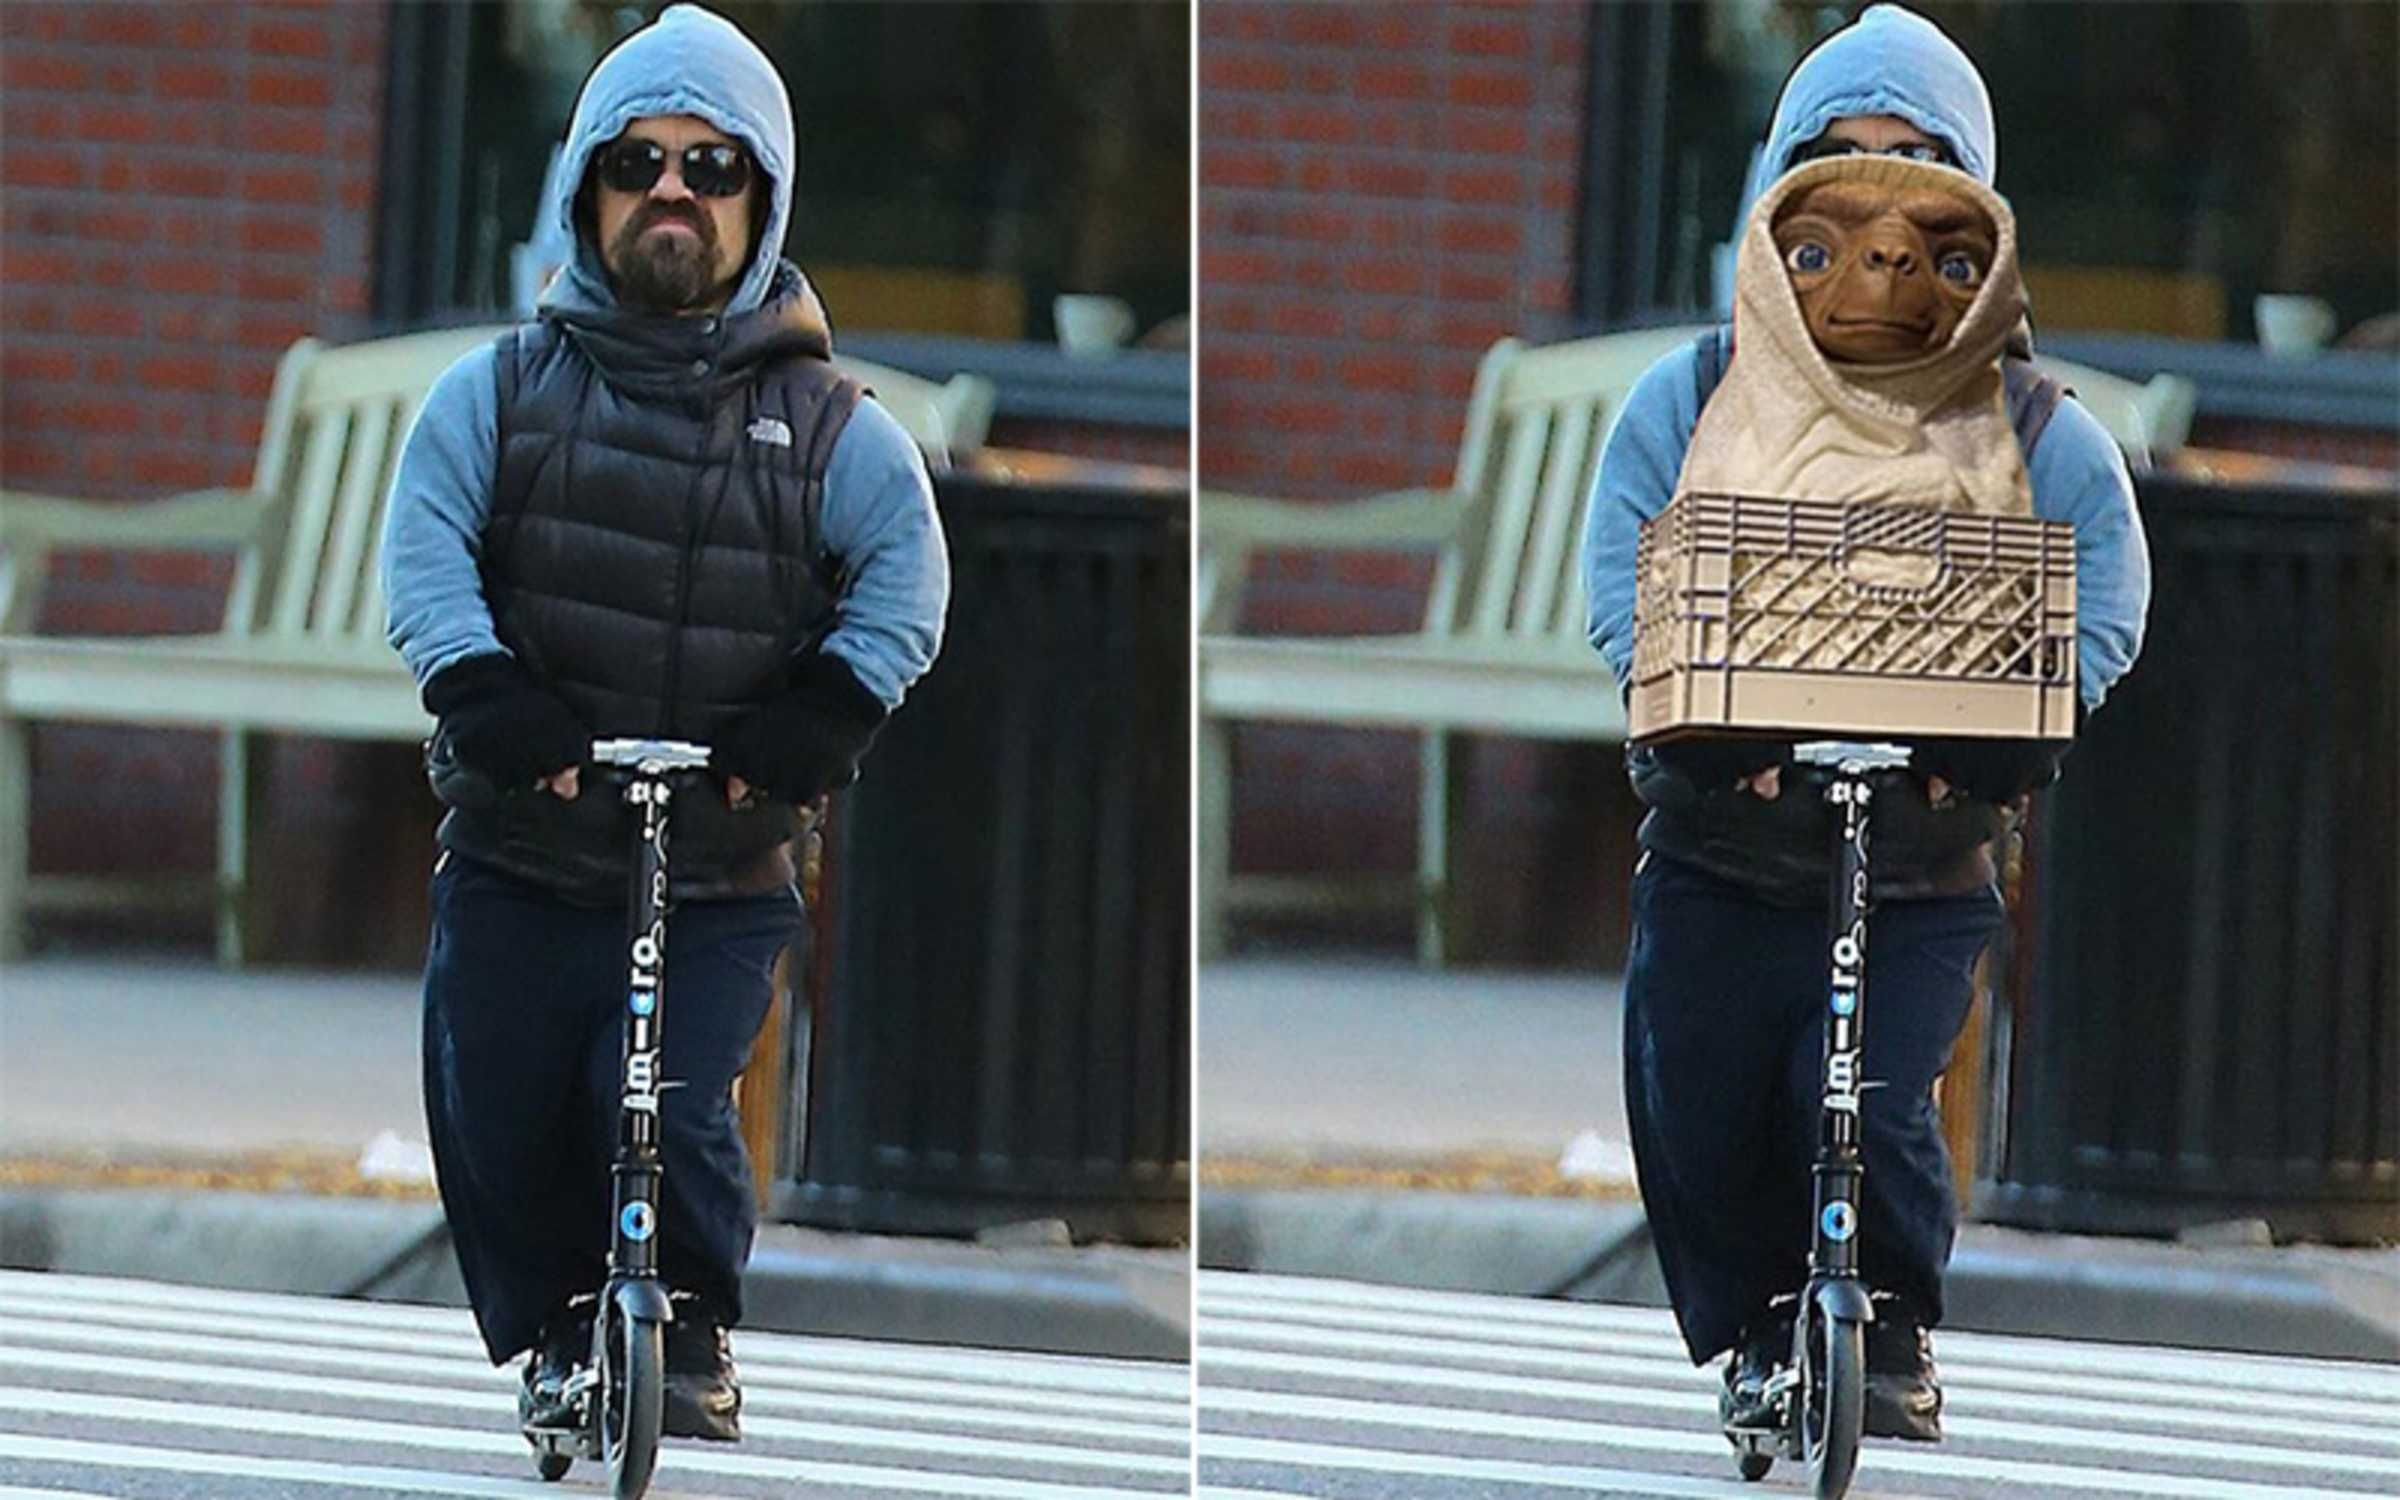 Photo Of Peter Dinklage Riding A Scooter Sparks Funniest Photoshop - Photo of peter dinklage riding a scooter sparks funniest photoshop battle ever